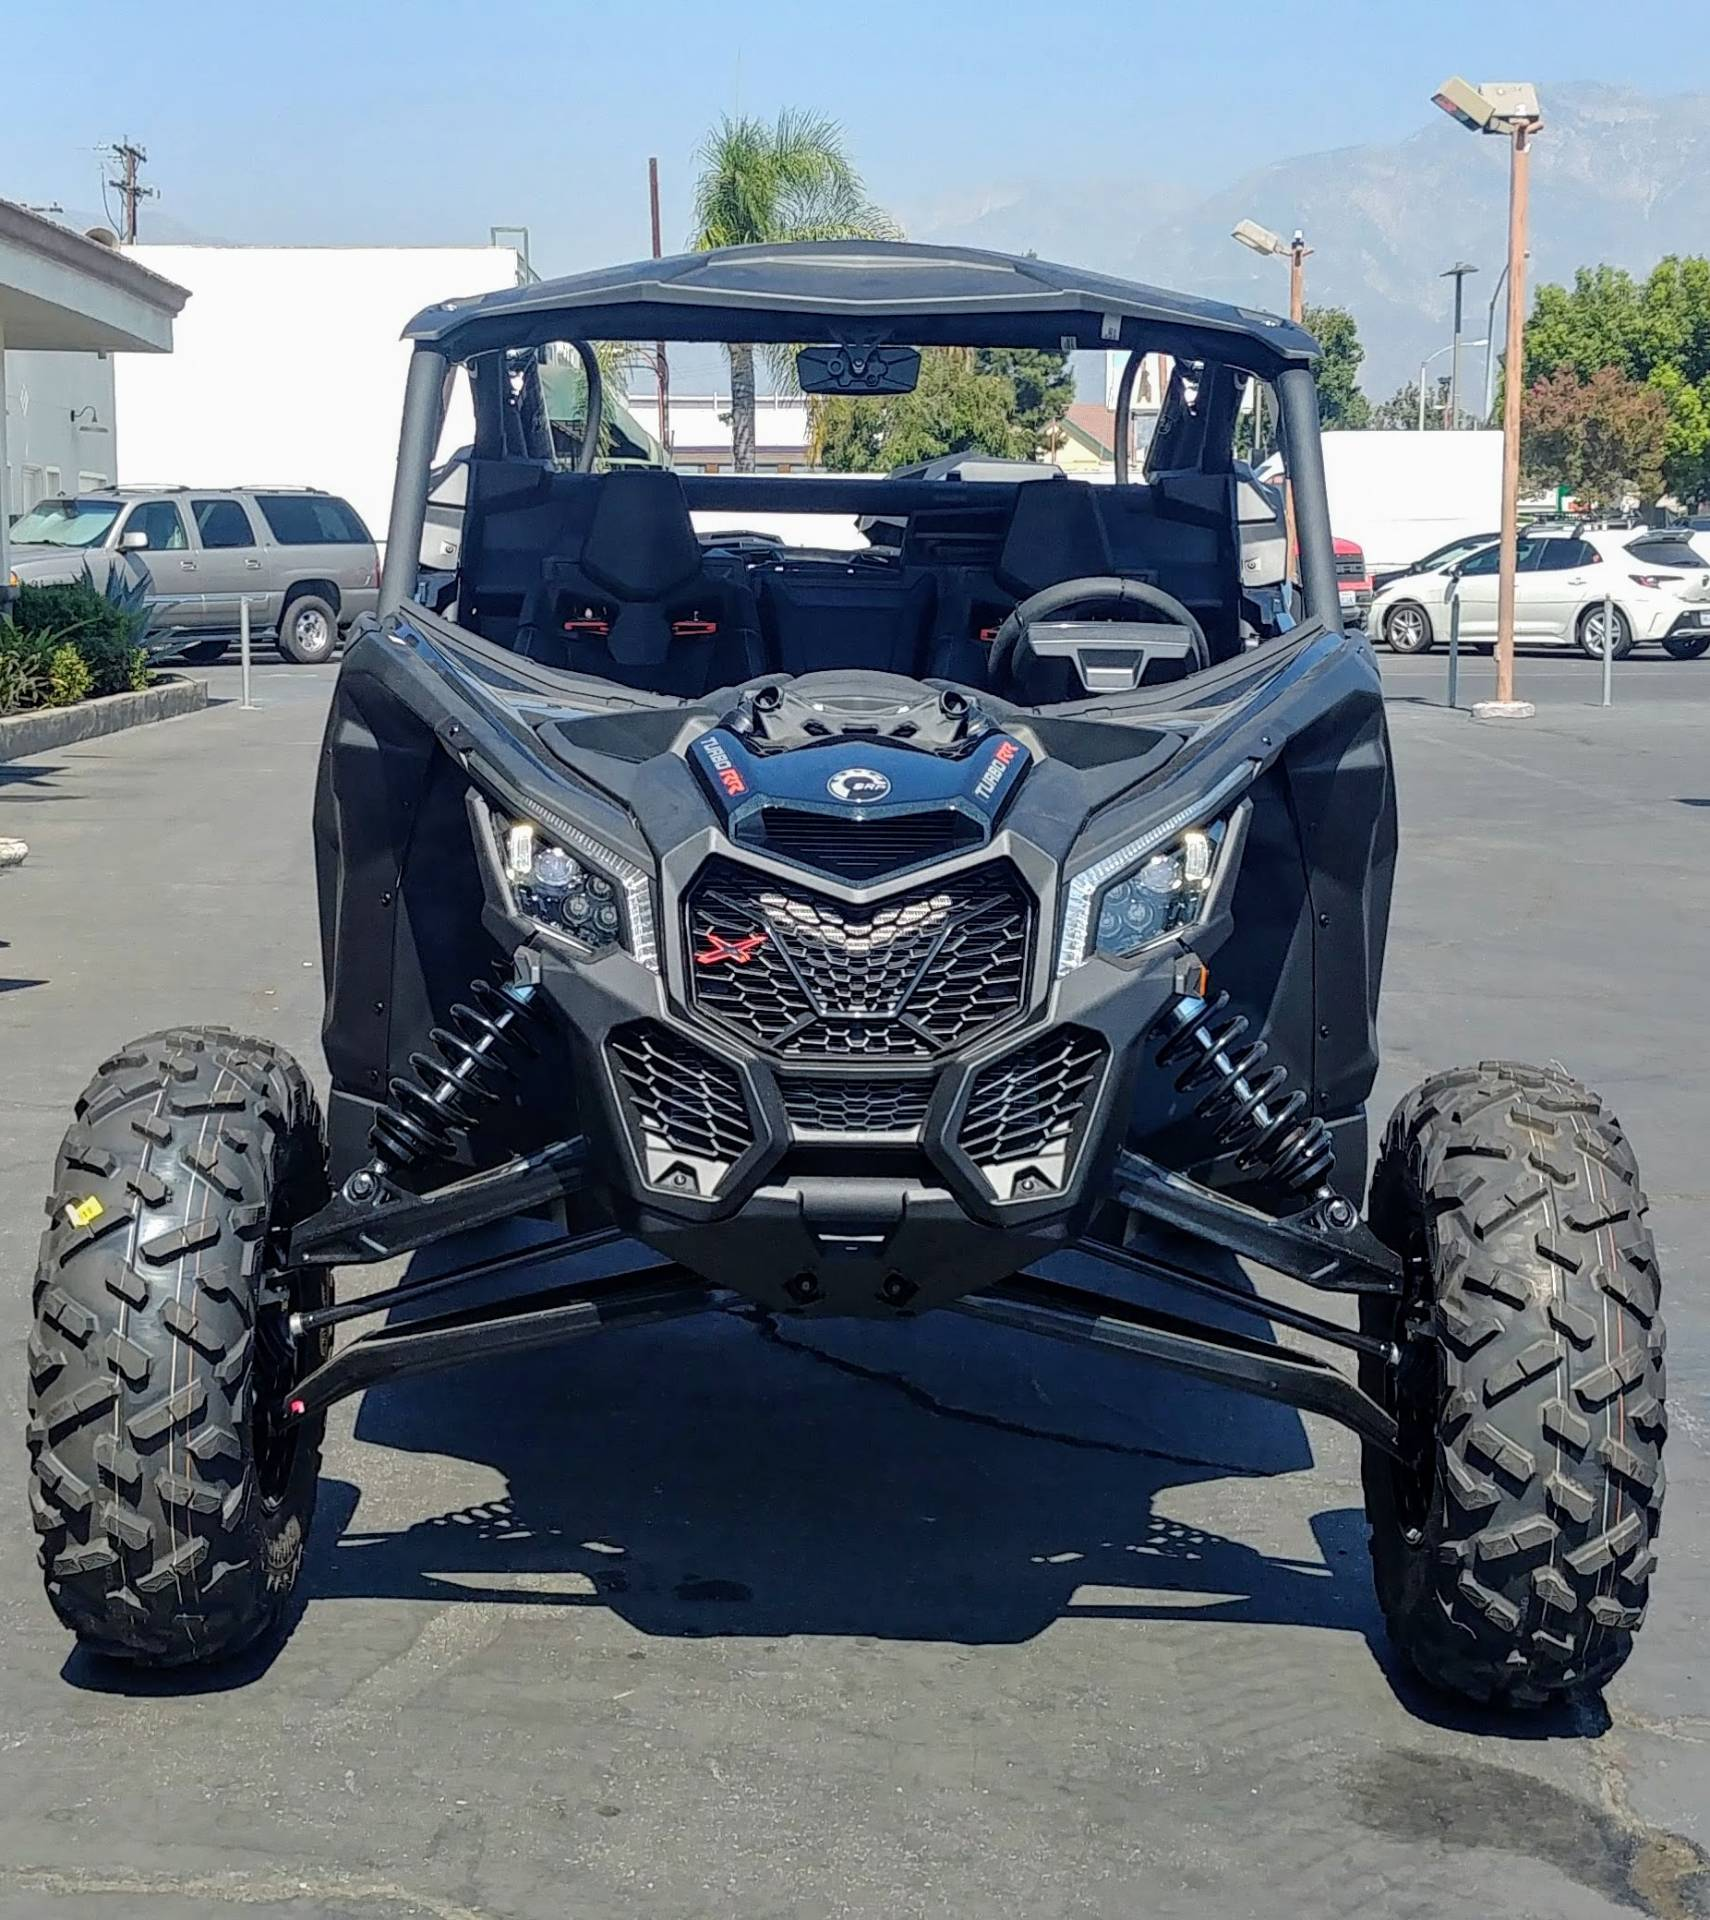 2021 Can-Am Maverick X3 X RS Turbo RR in Ontario, California - Photo 7